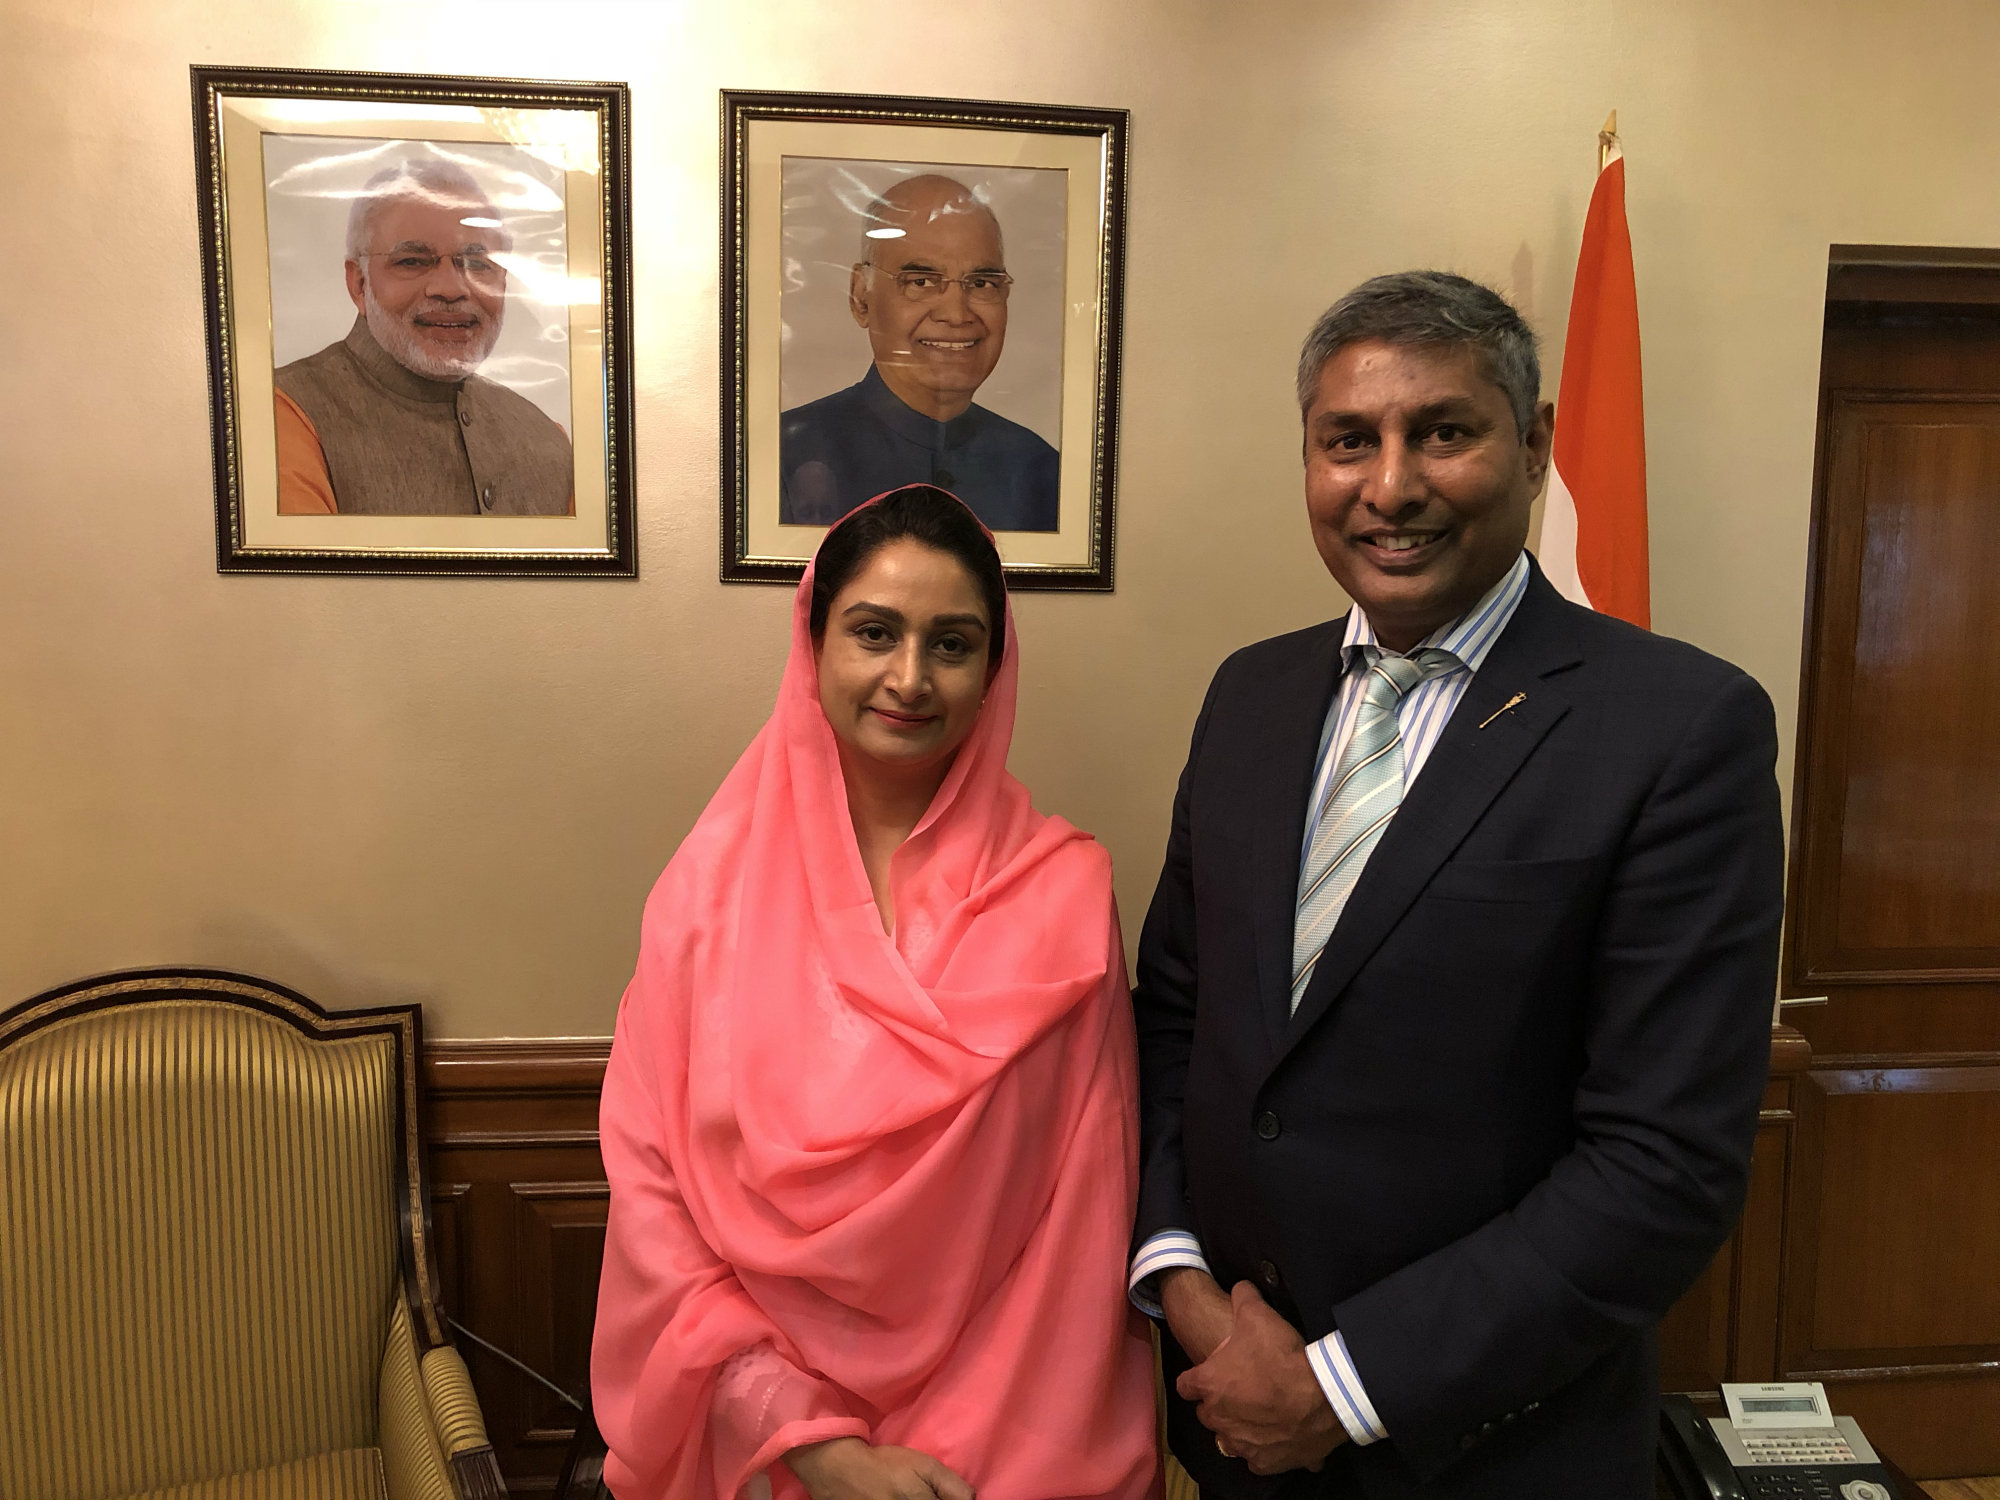 https://d3n8a8pro7vhmx.cloudfront.net/prasadpanda/pages/13/features/original/Indian_Minister_of_Food_Processing_Harsimrat_Kaur_Badal_and_I_in_India.JPG?1545339993